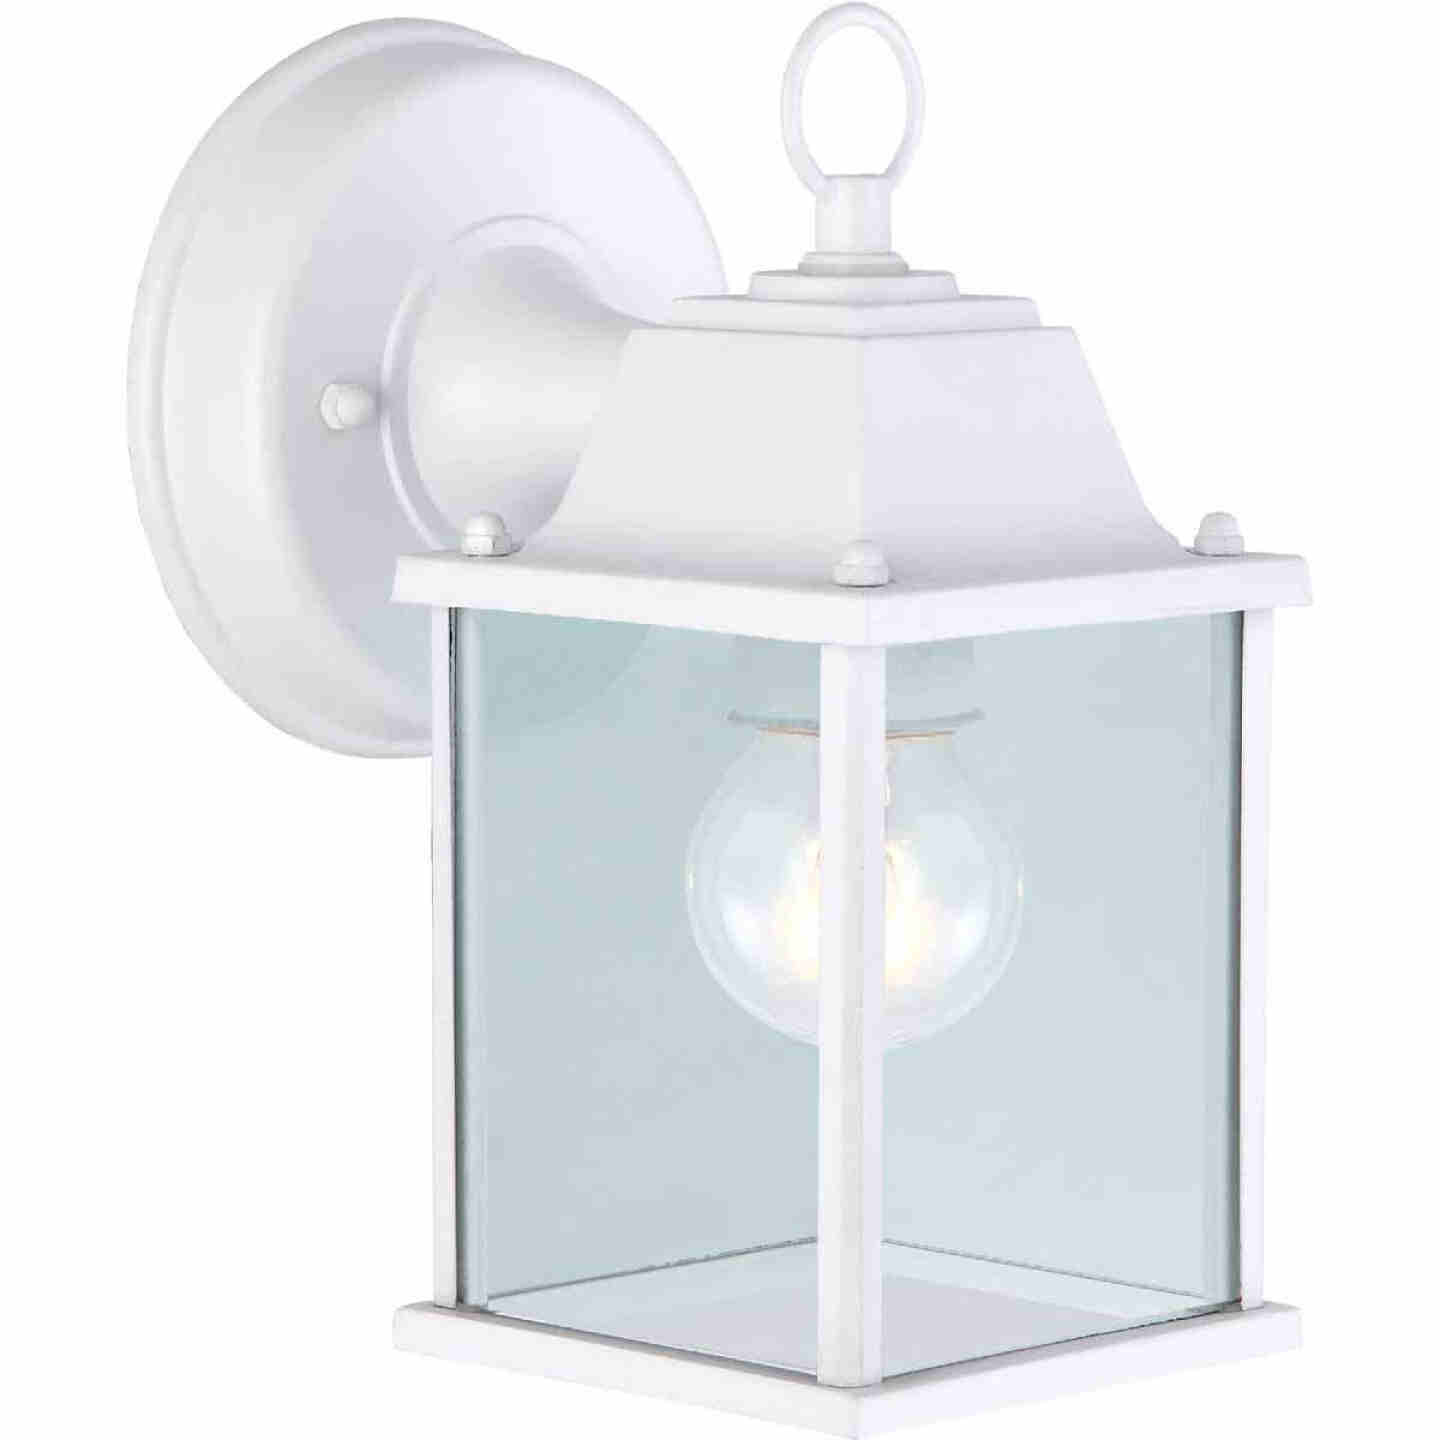 Home Impressions 100W Incandescent White Lantern Outdoor Wall Light Fixture Image 1